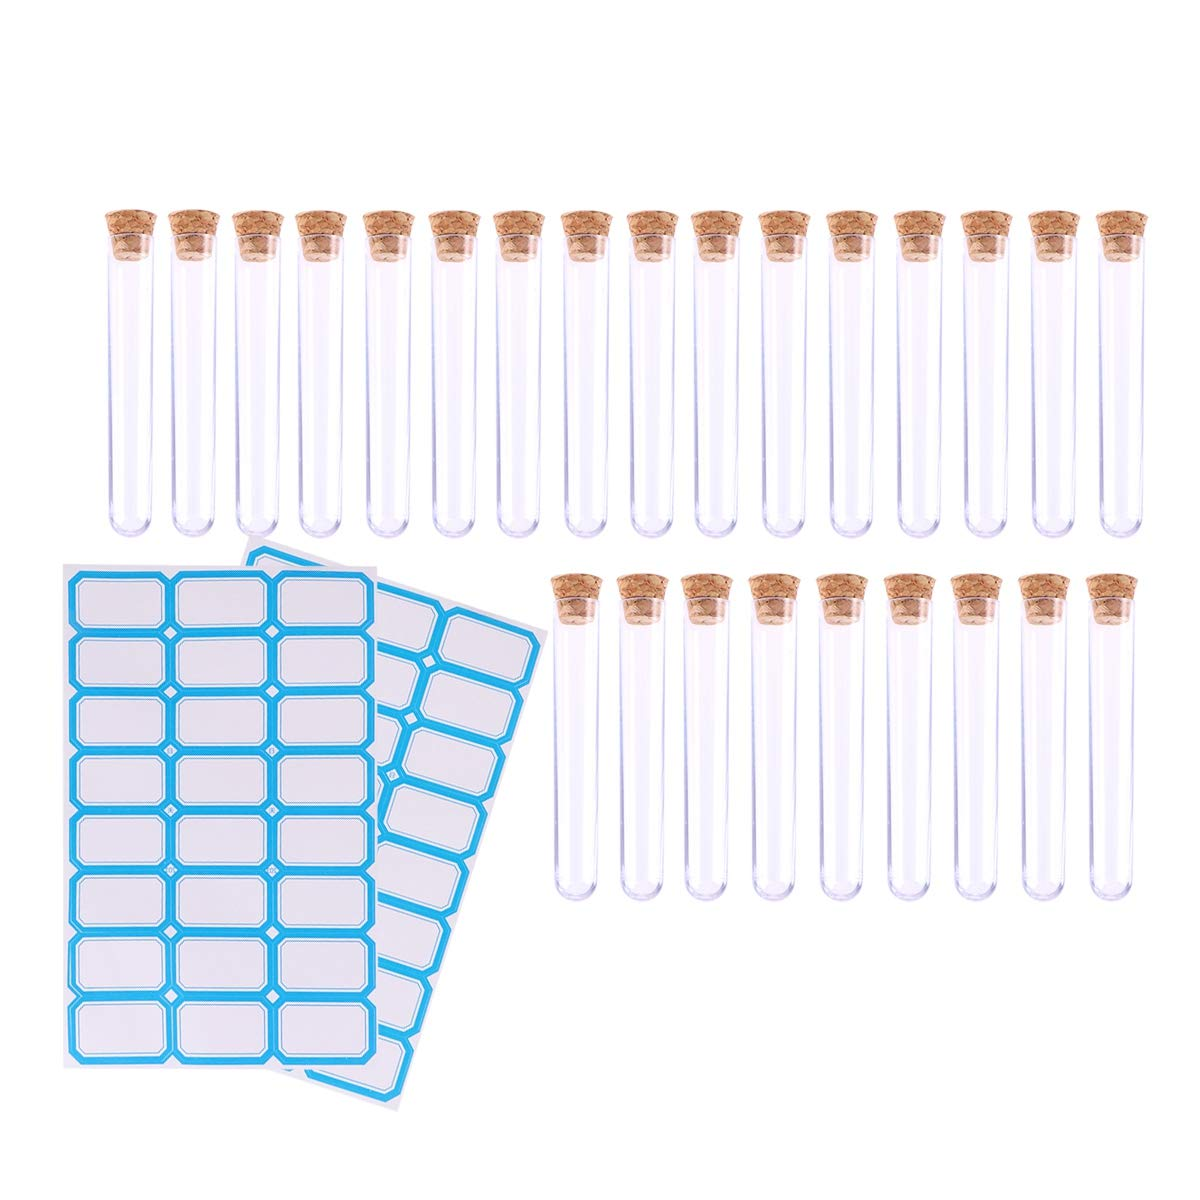 ULTECHNOVO 50pcs Hard Plastic Clear Test Tubes with Cork stoppers and 2pcs Label Stickers for Scientific Experiments Candy Storage Christmas Wedding Party d/écor